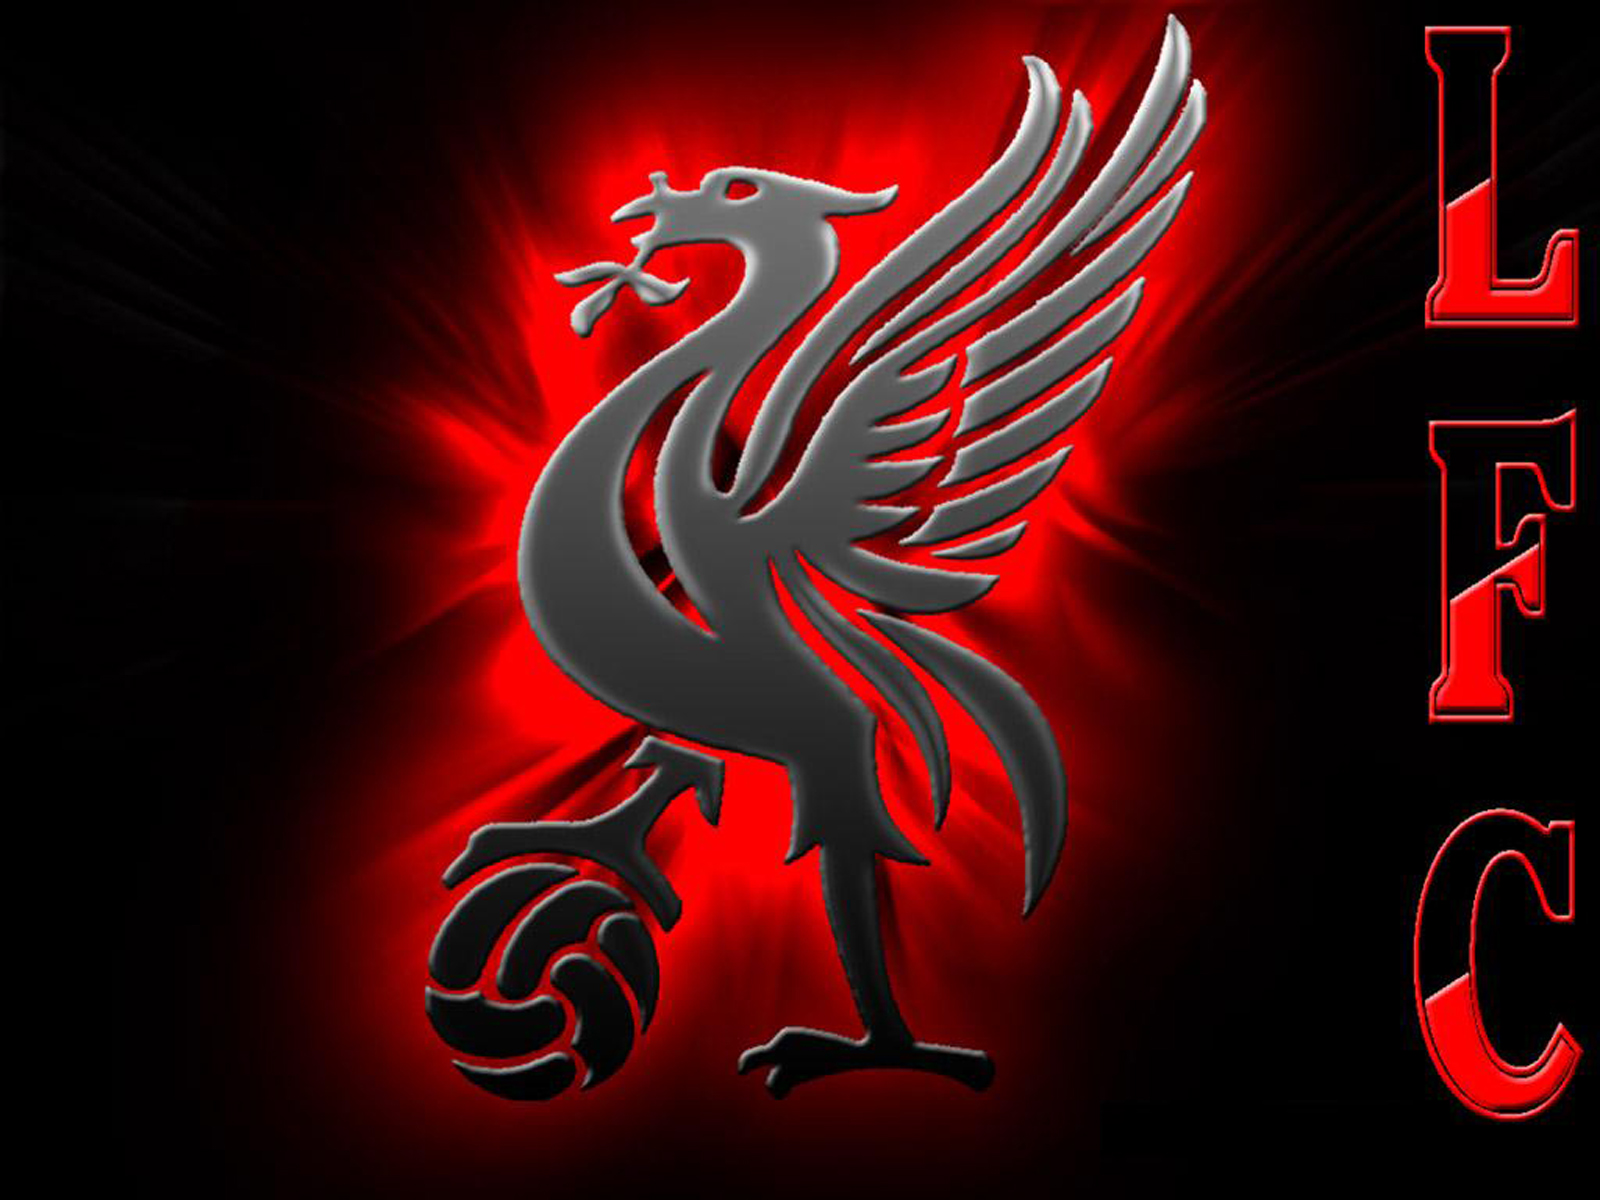 Wallpapers hd for mac liverpool fc logo wallpaper hd 2013 - Lfc pictures free ...